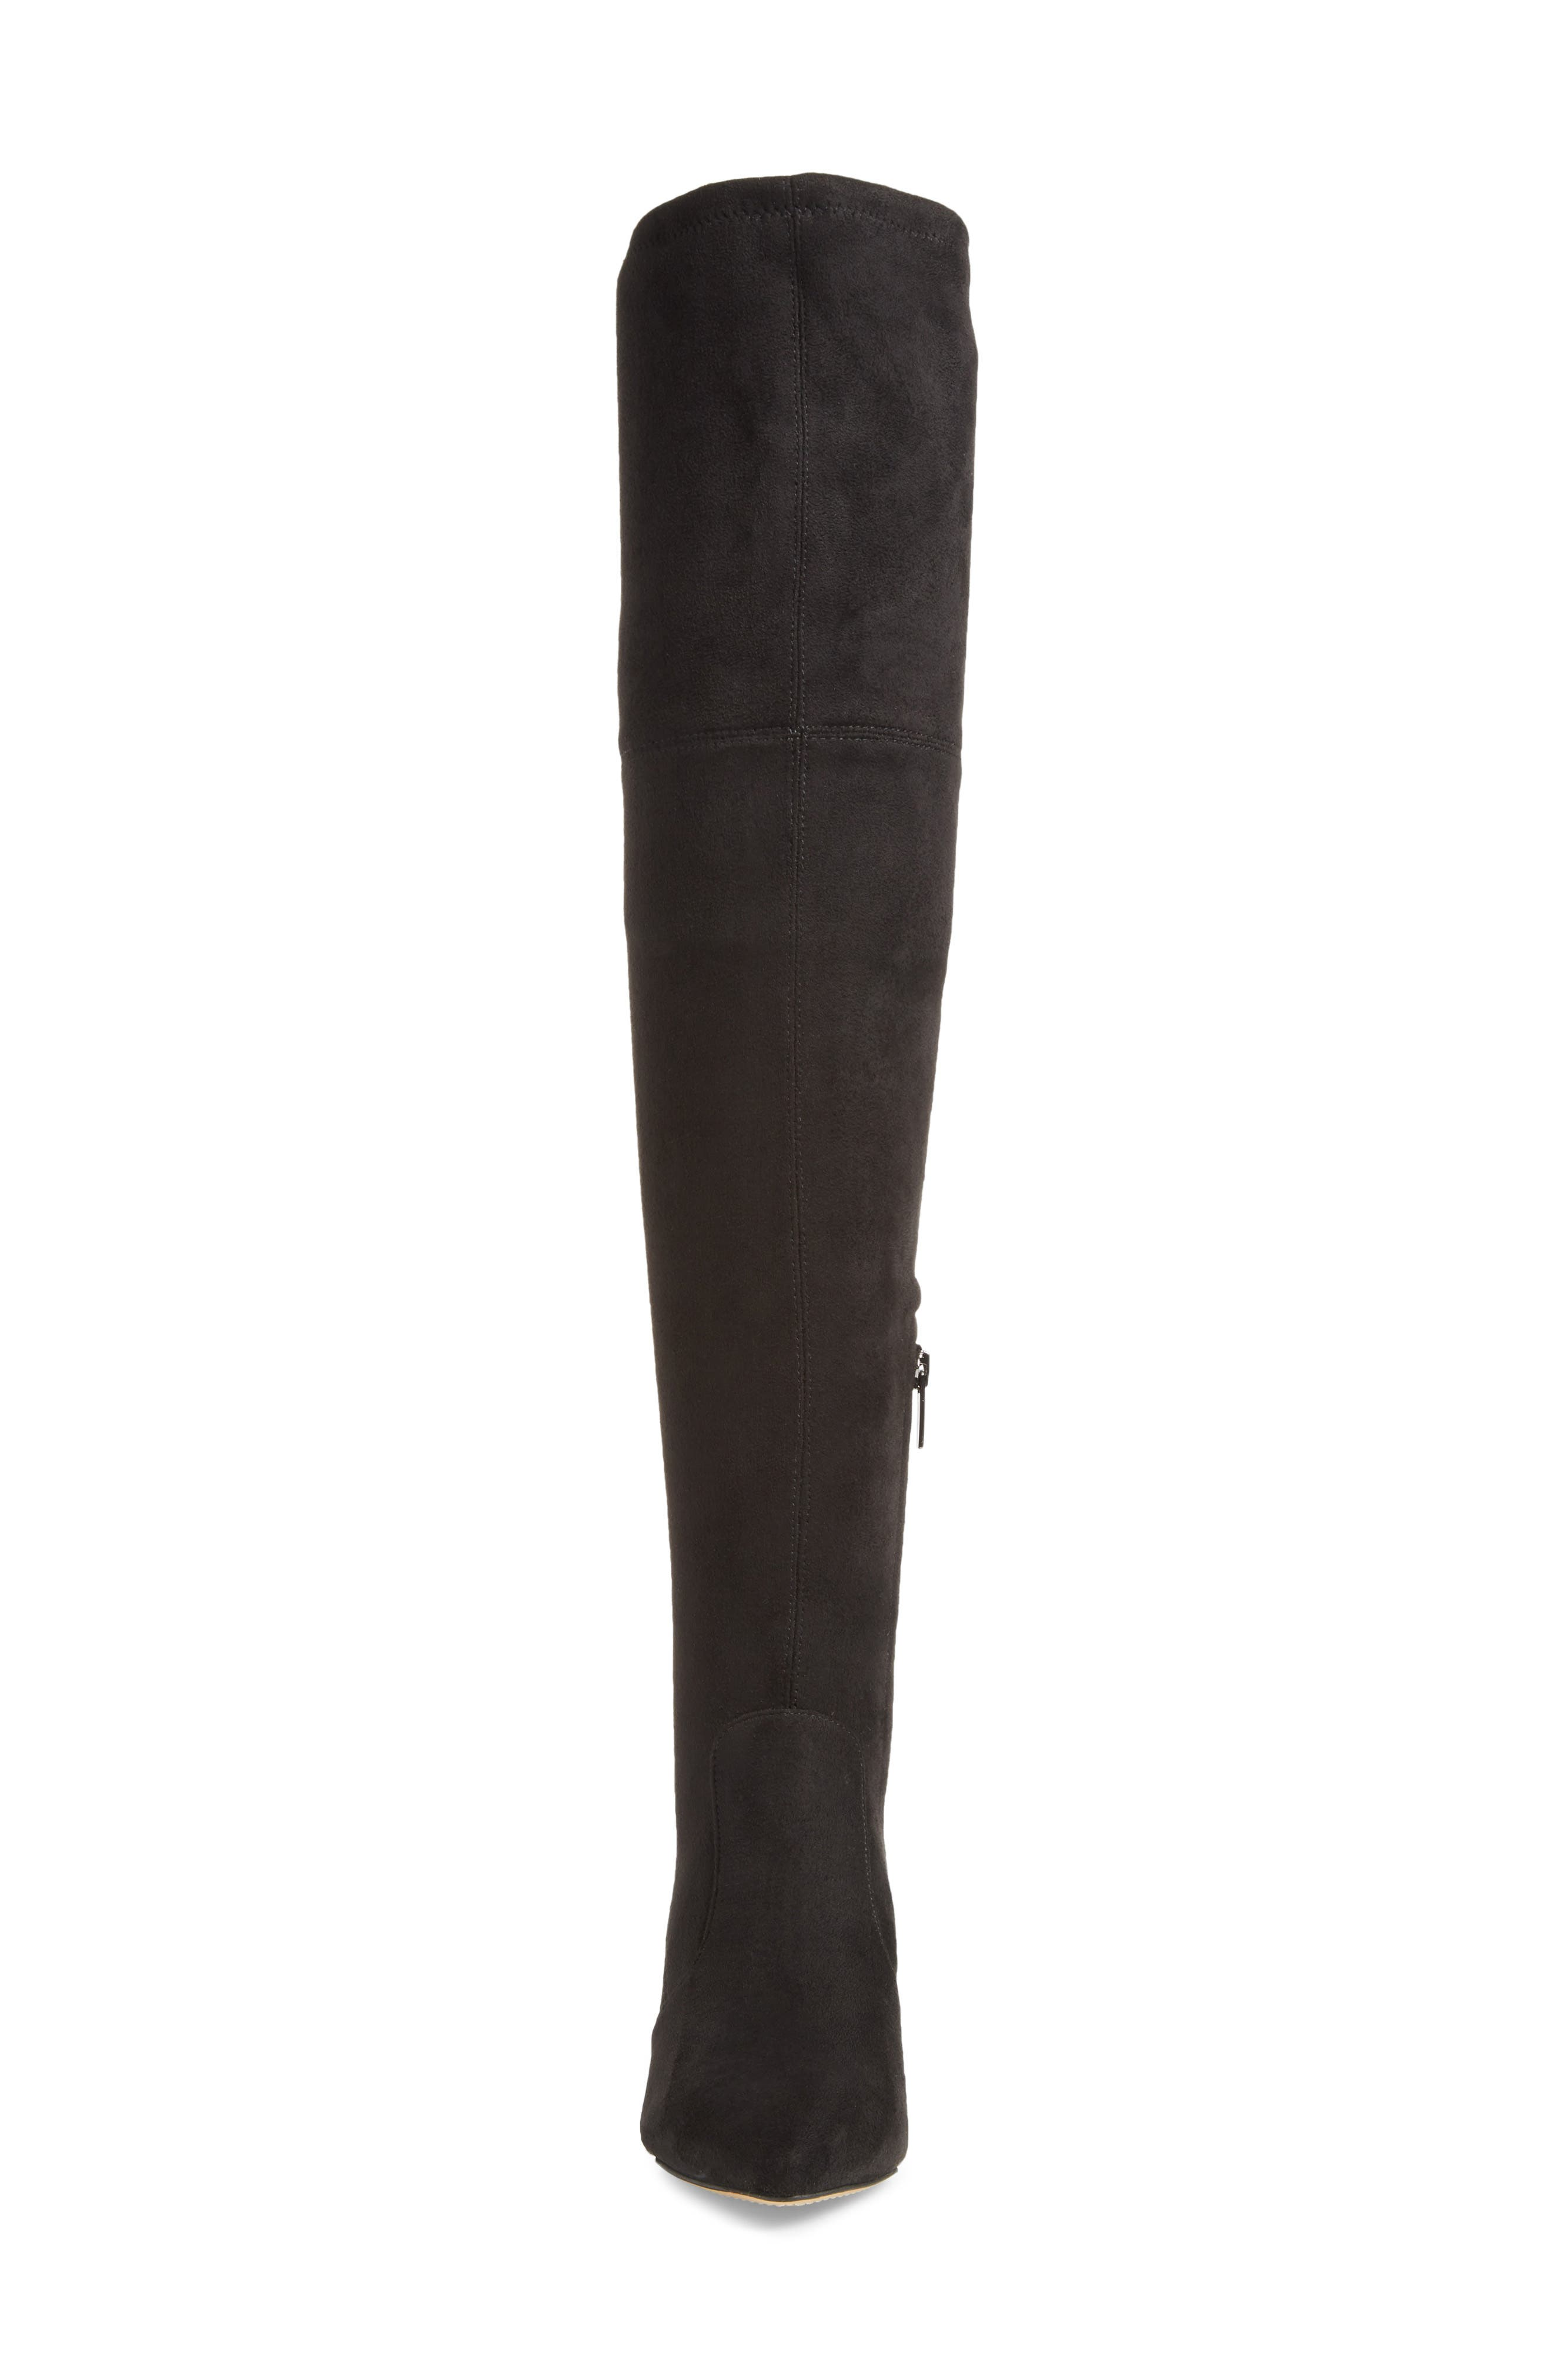 VINCE CAMUTO,                             Ashlina Over the Knee Boot,                             Alternate thumbnail 4, color,                             001